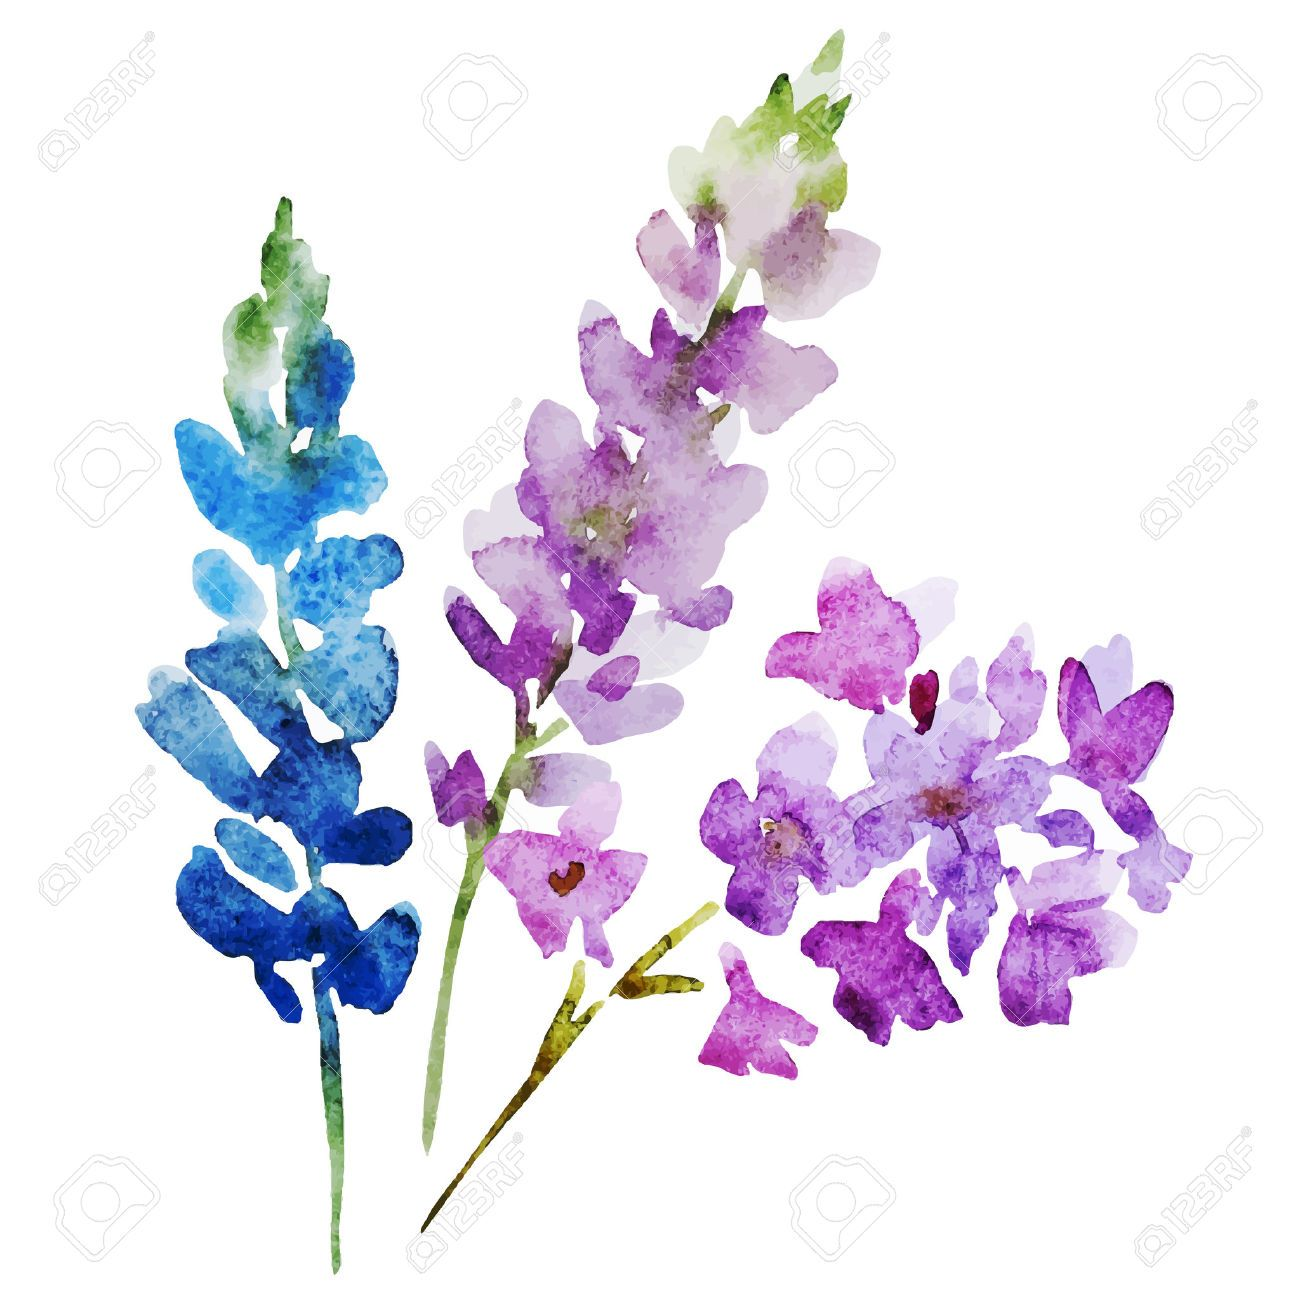 Image Result For Watercolor Flowers Watercolor Flower Vector